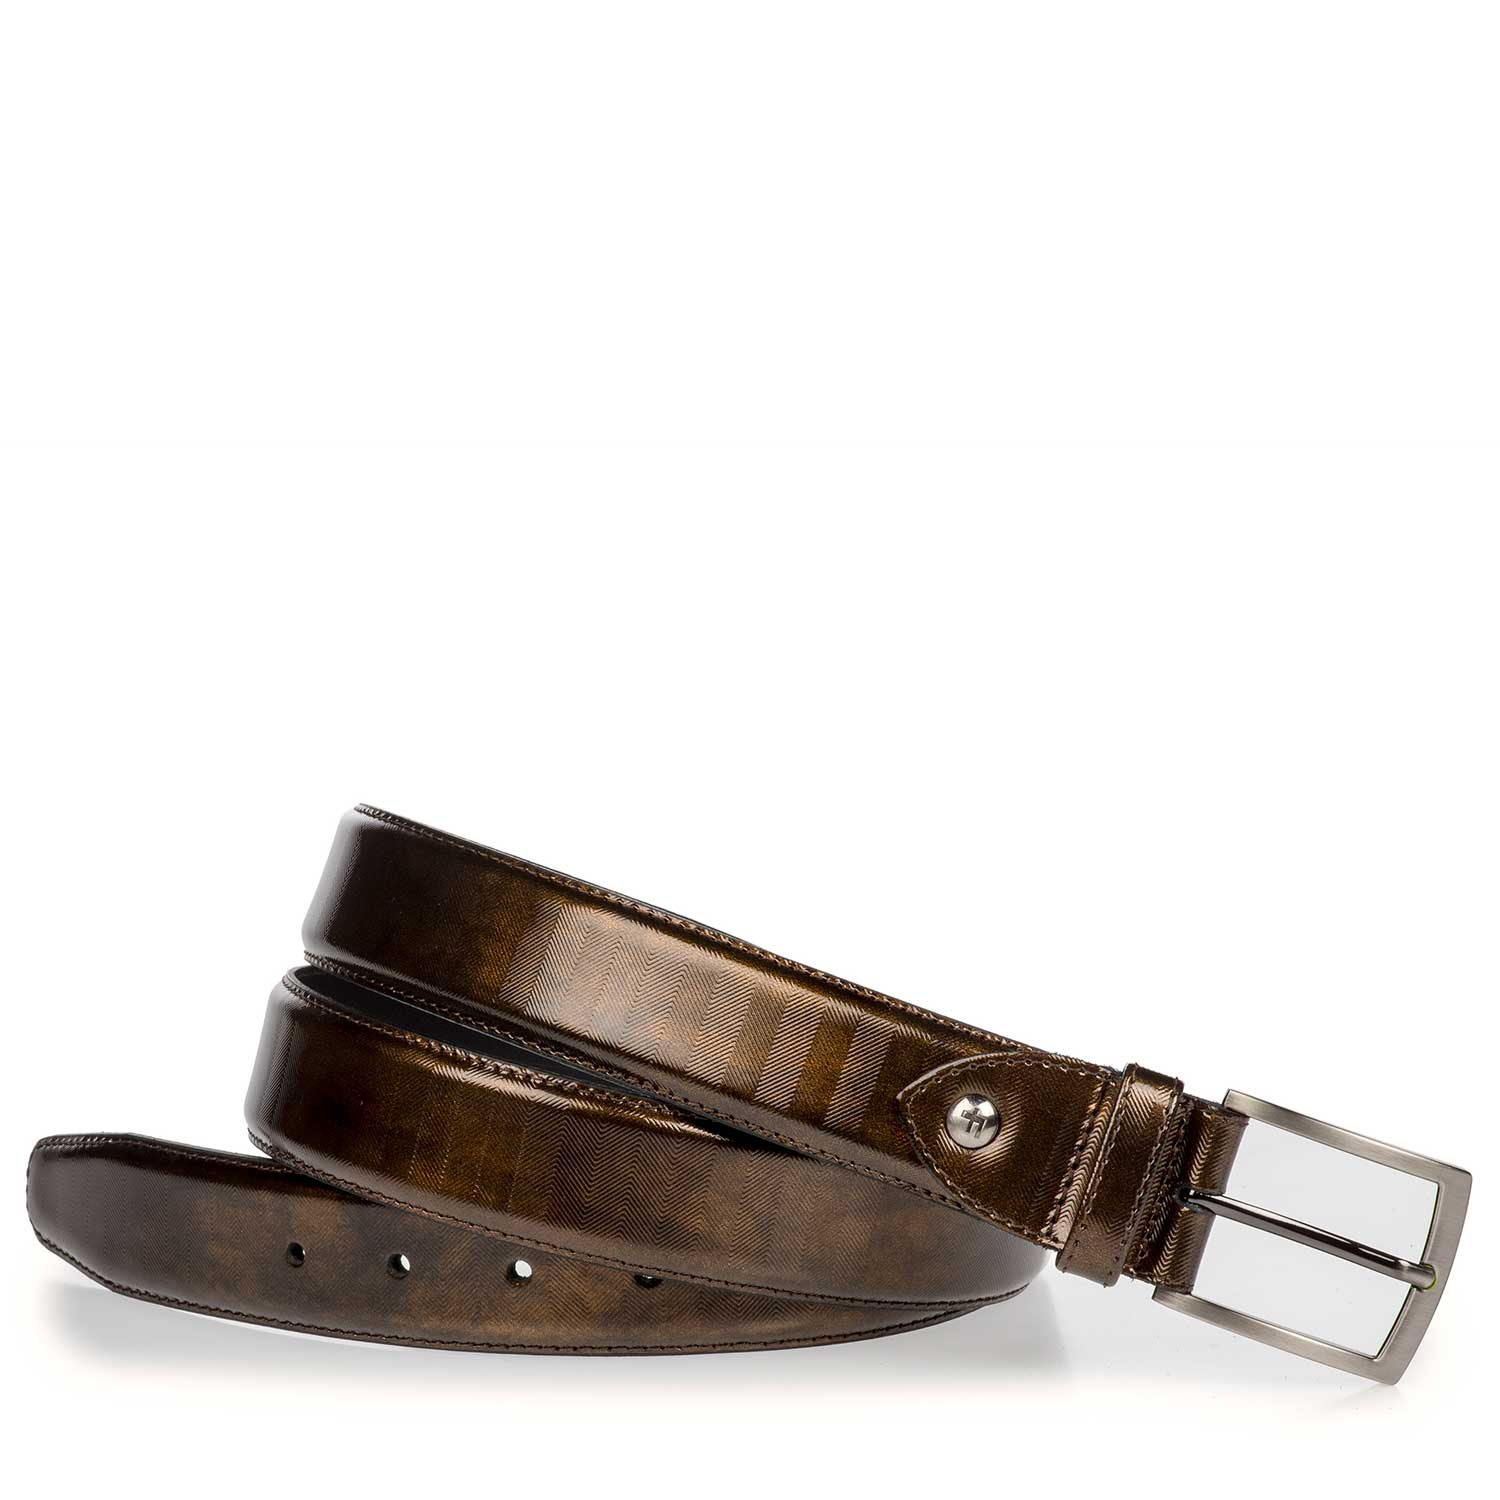 75190/01 - Bronze-coloured Premium patent leather belt